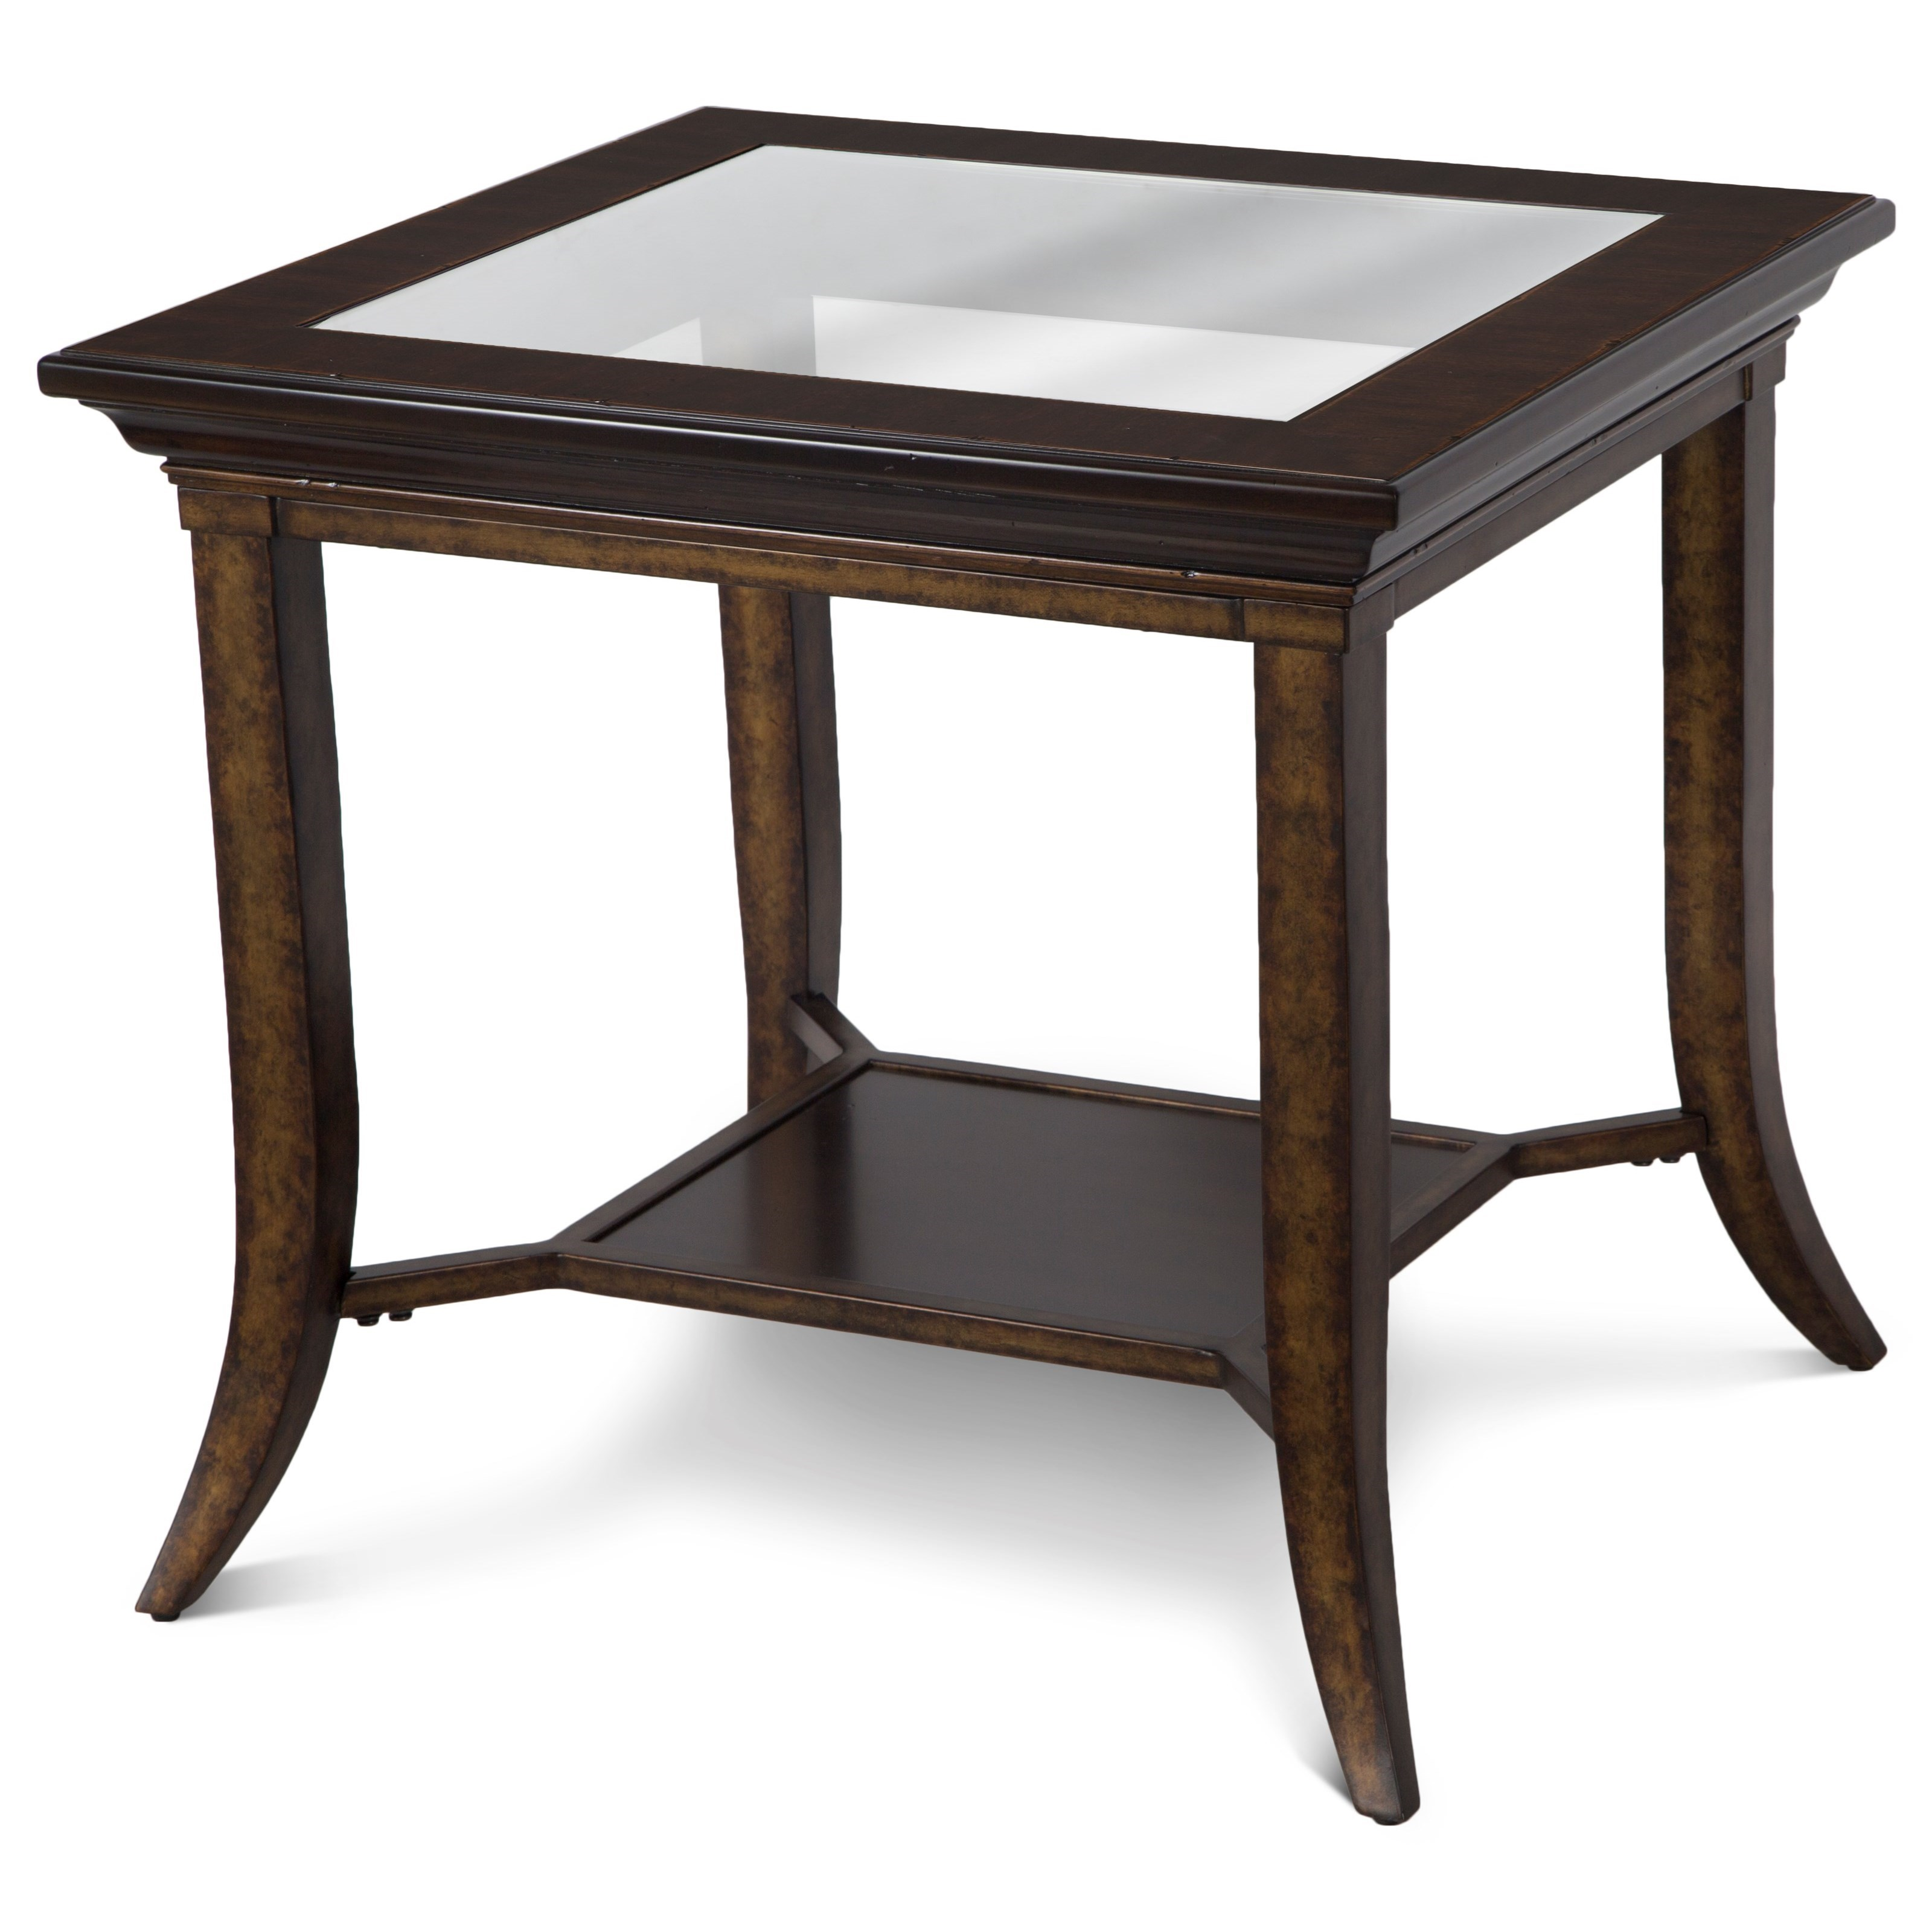 magnussen home parsons rectangular end table with glass top value products color furniture tables nesting calgary oak sofa side black mirror white patio pillows for brown leather